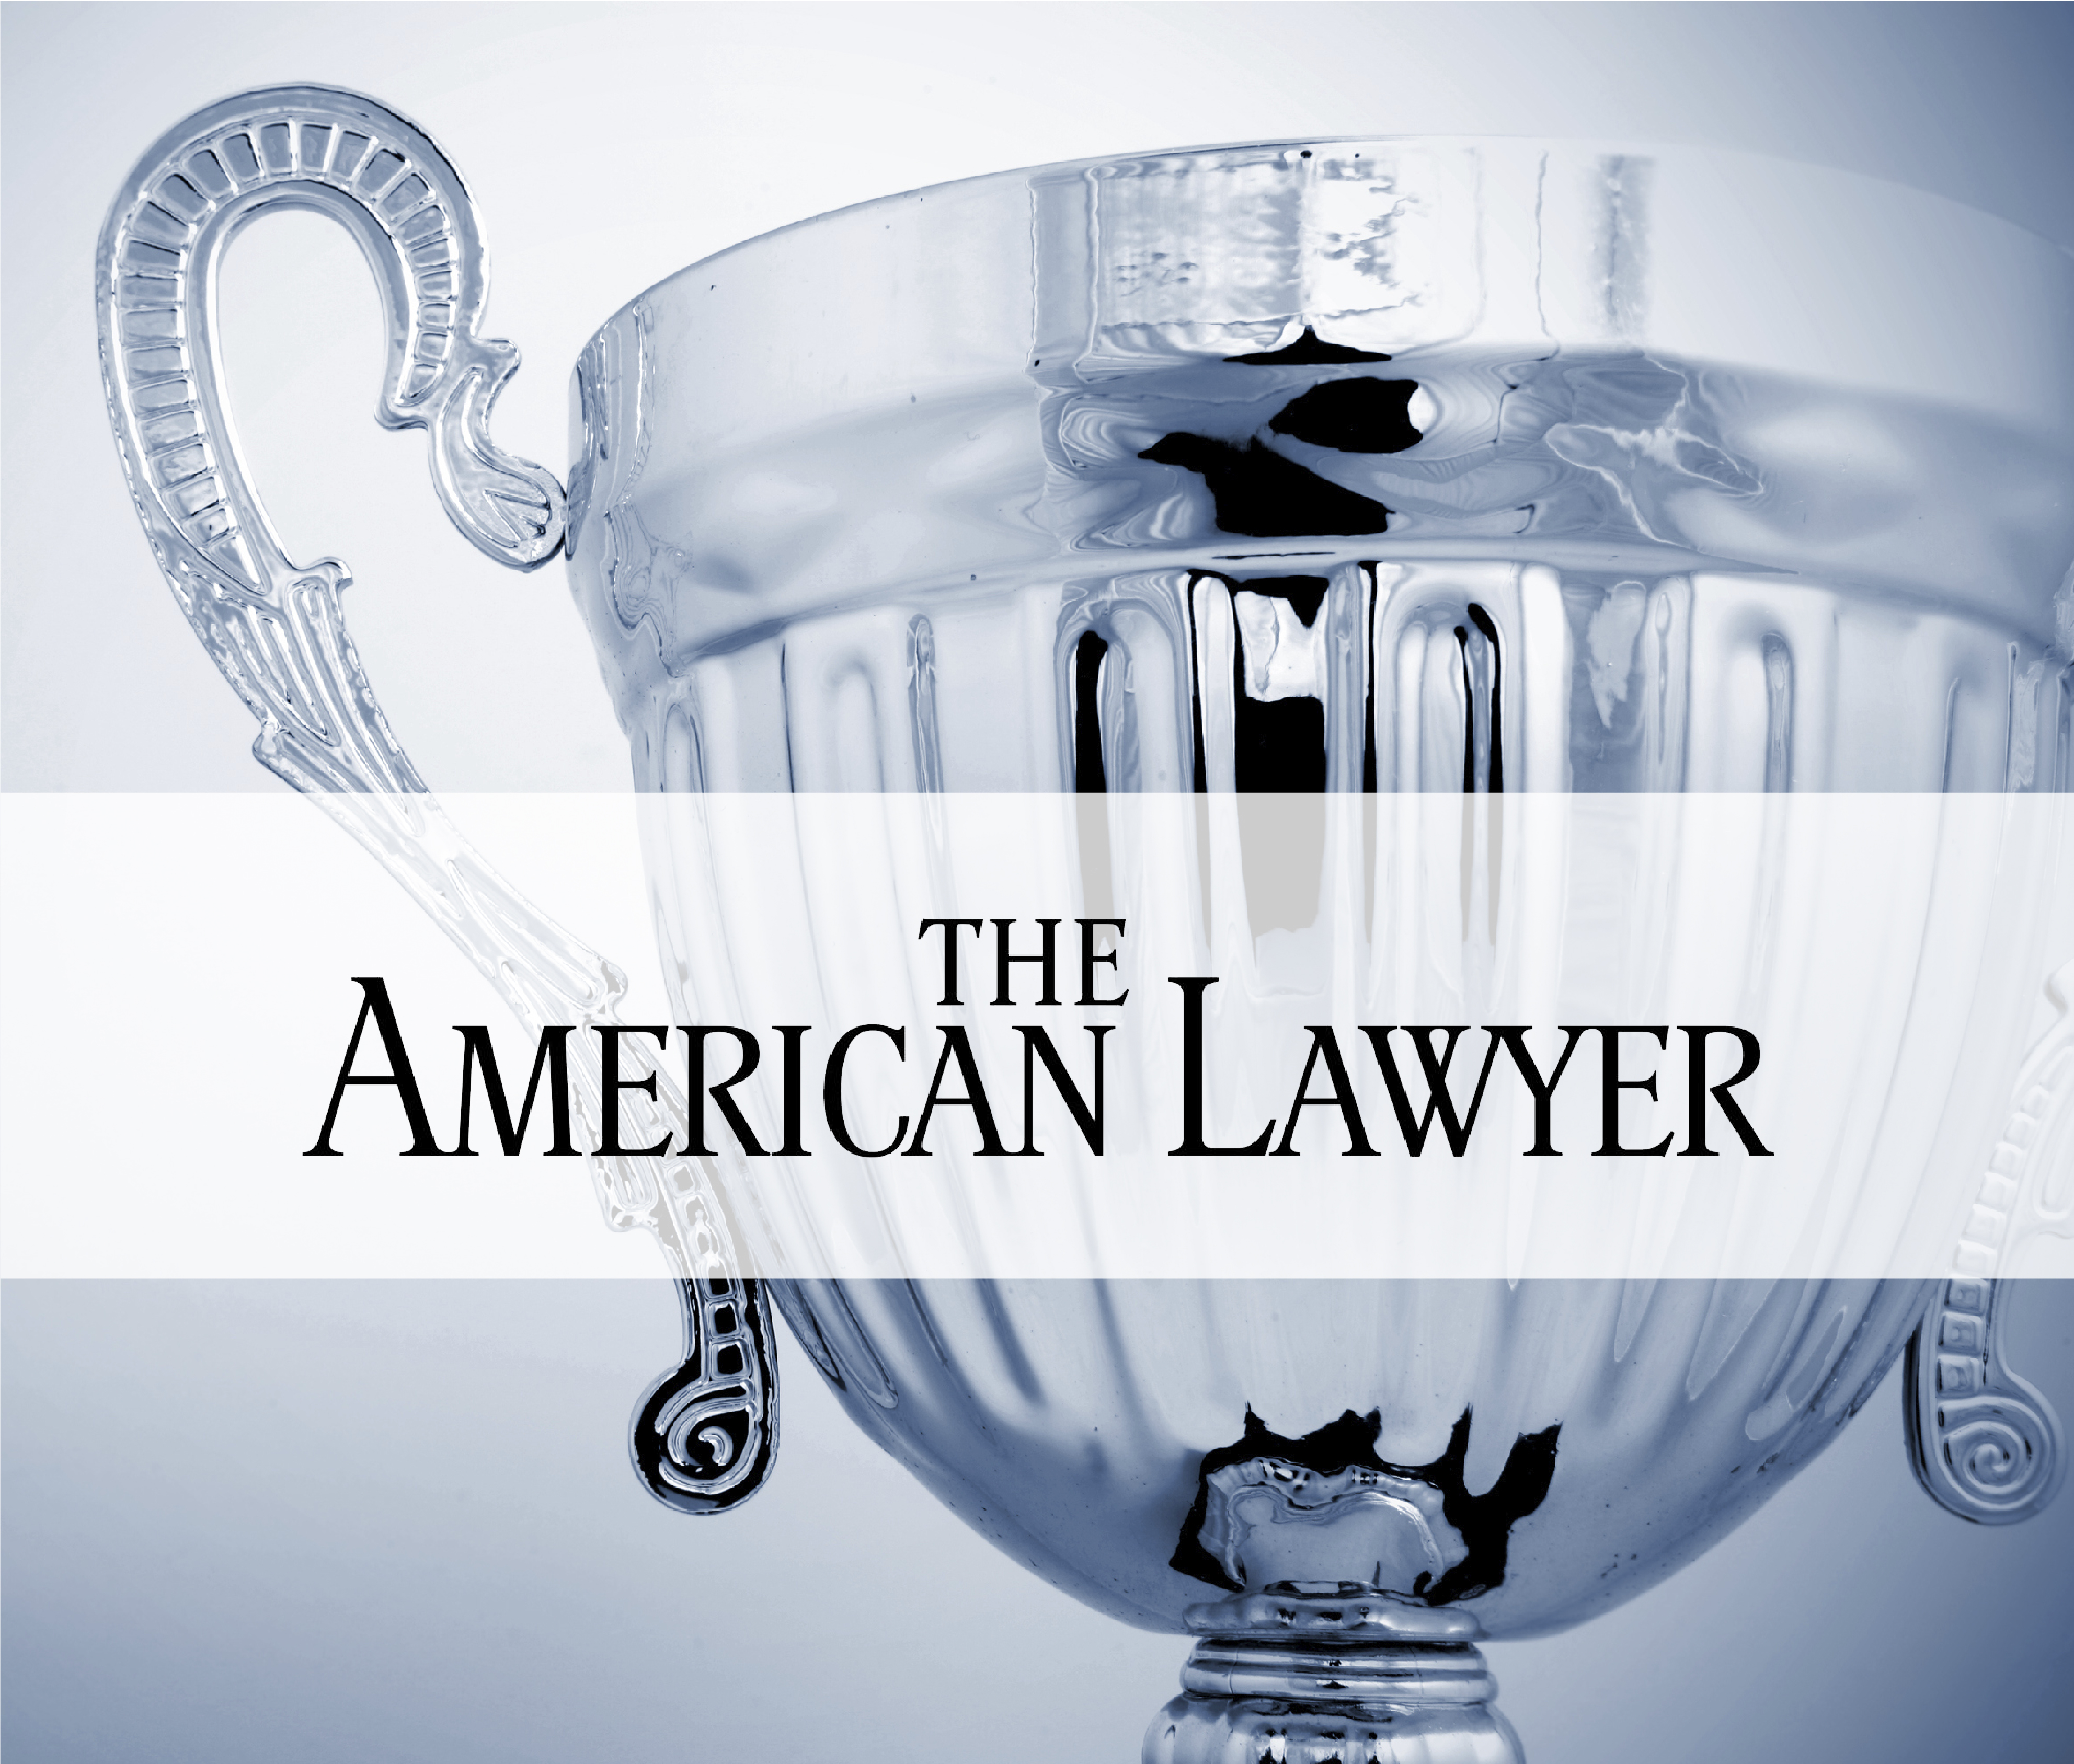 Williams & Connolly Receives The American Lawyer Litigation Department of the Year Honorable Mention